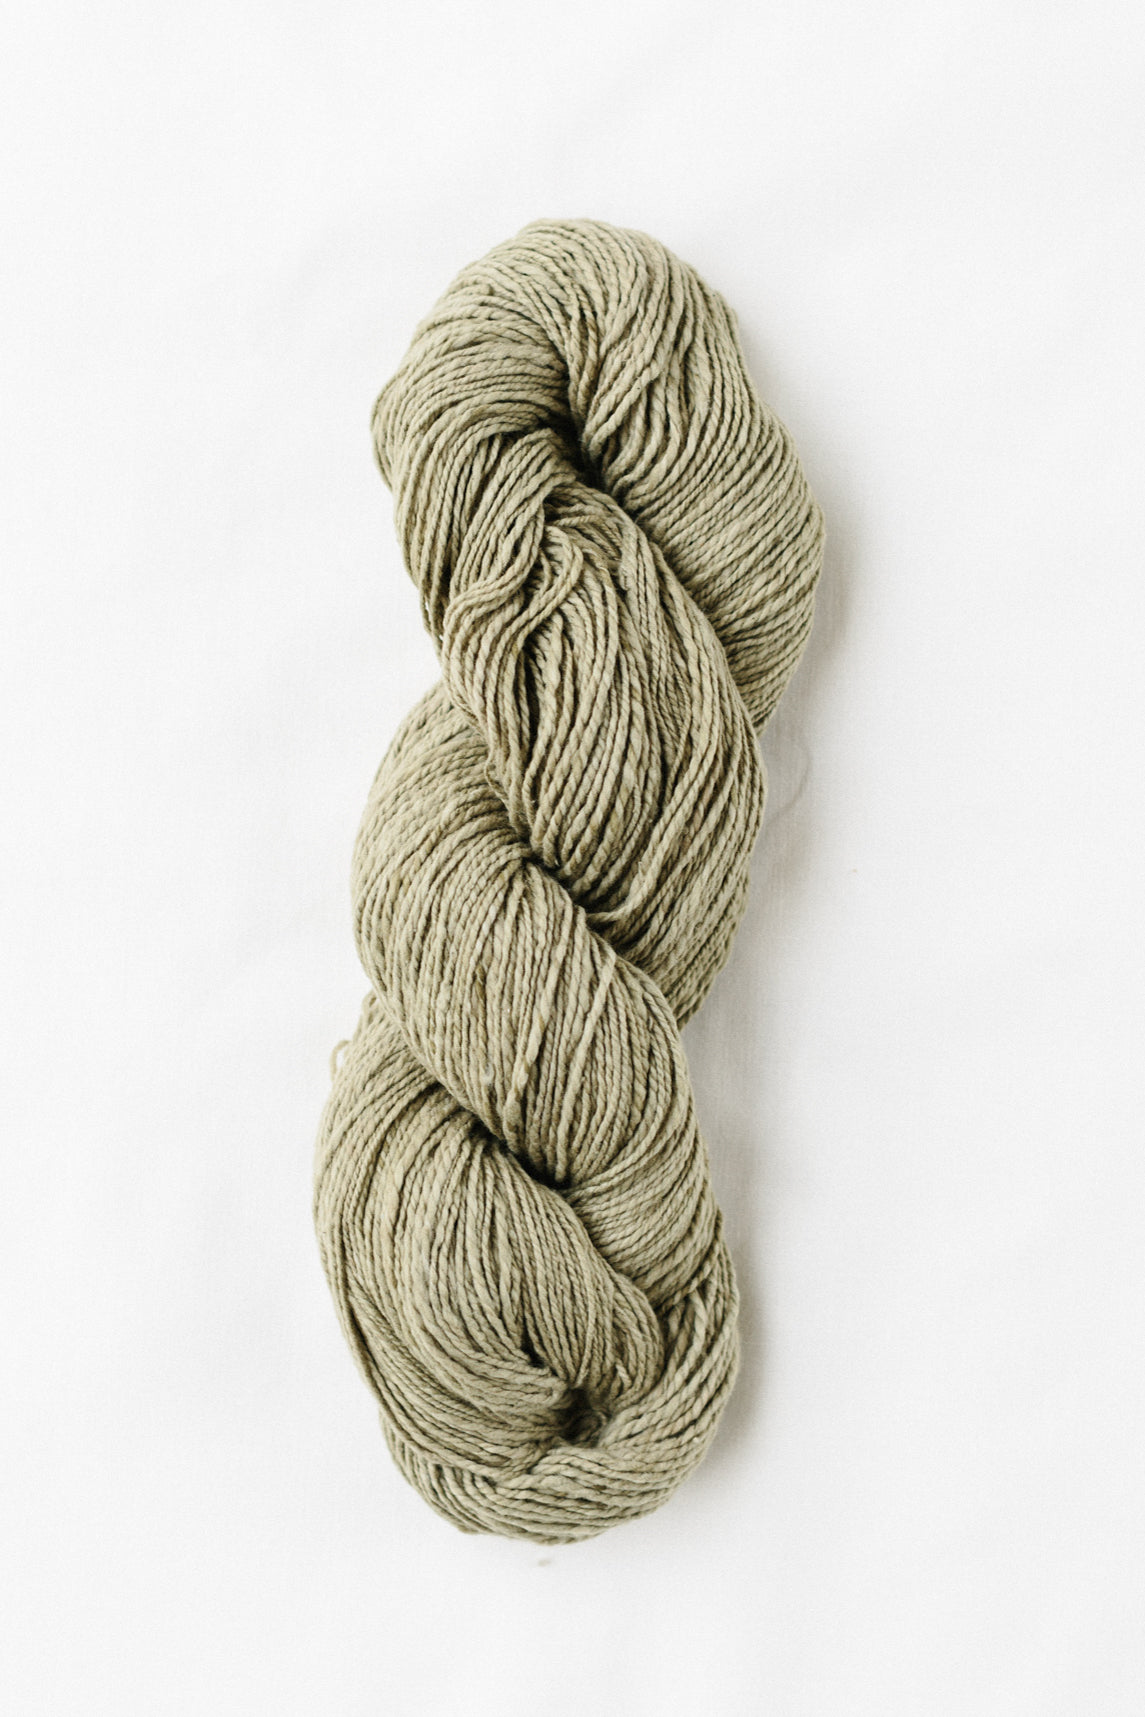 Ethiopian Handspun Cotton Yarn, Topiary